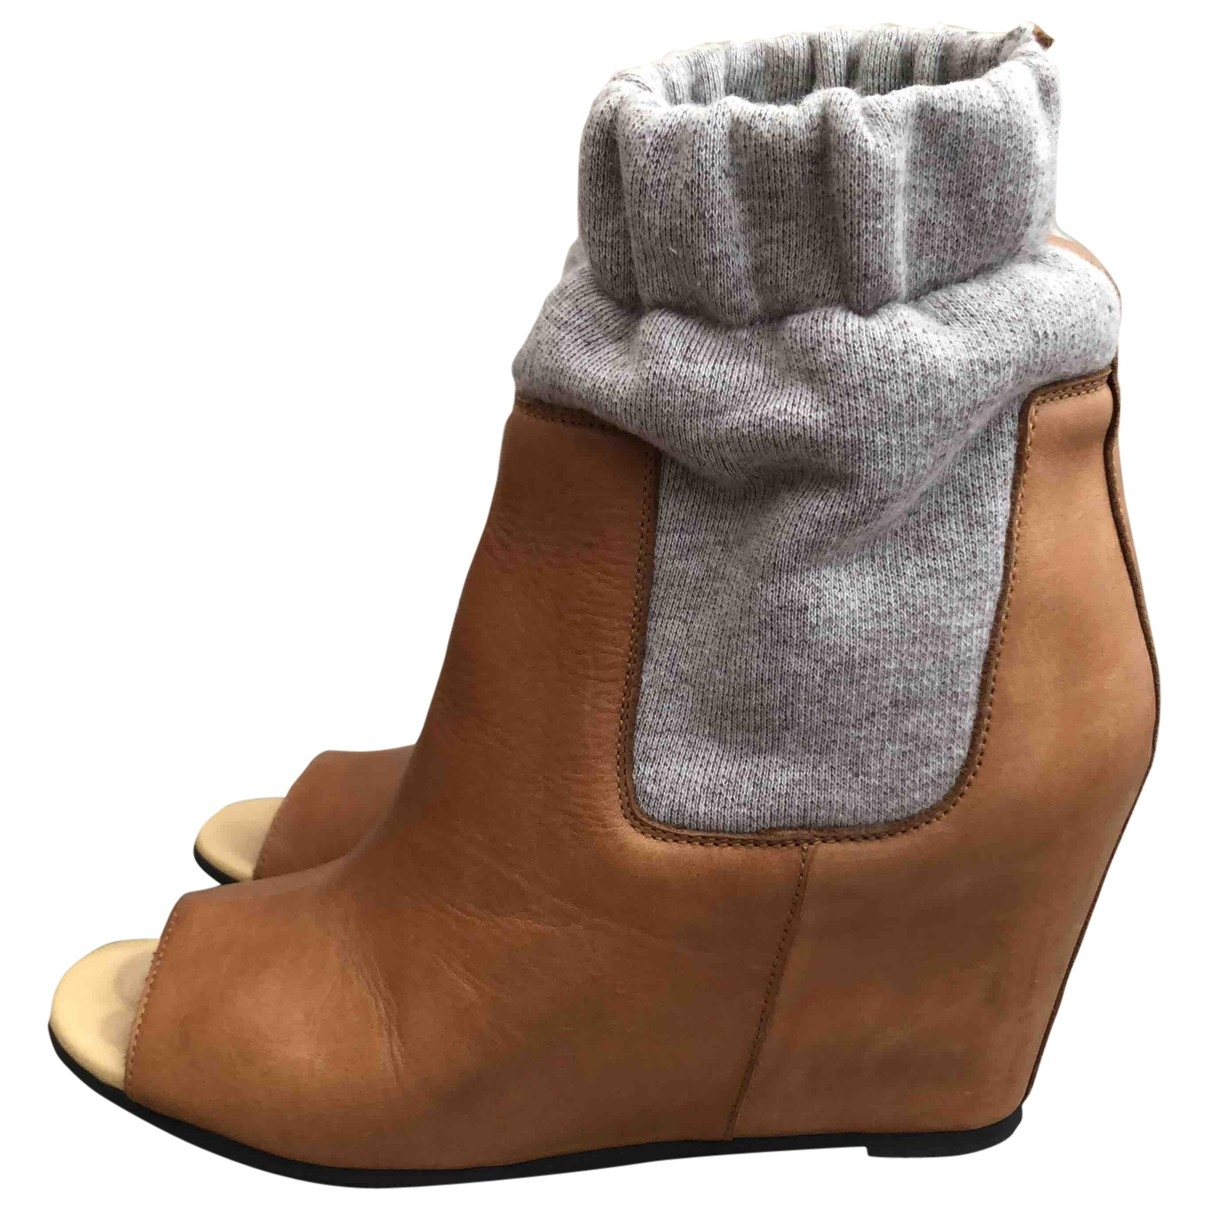 Mm6 \N Camel Leather Ankle boots for Women 39 EU